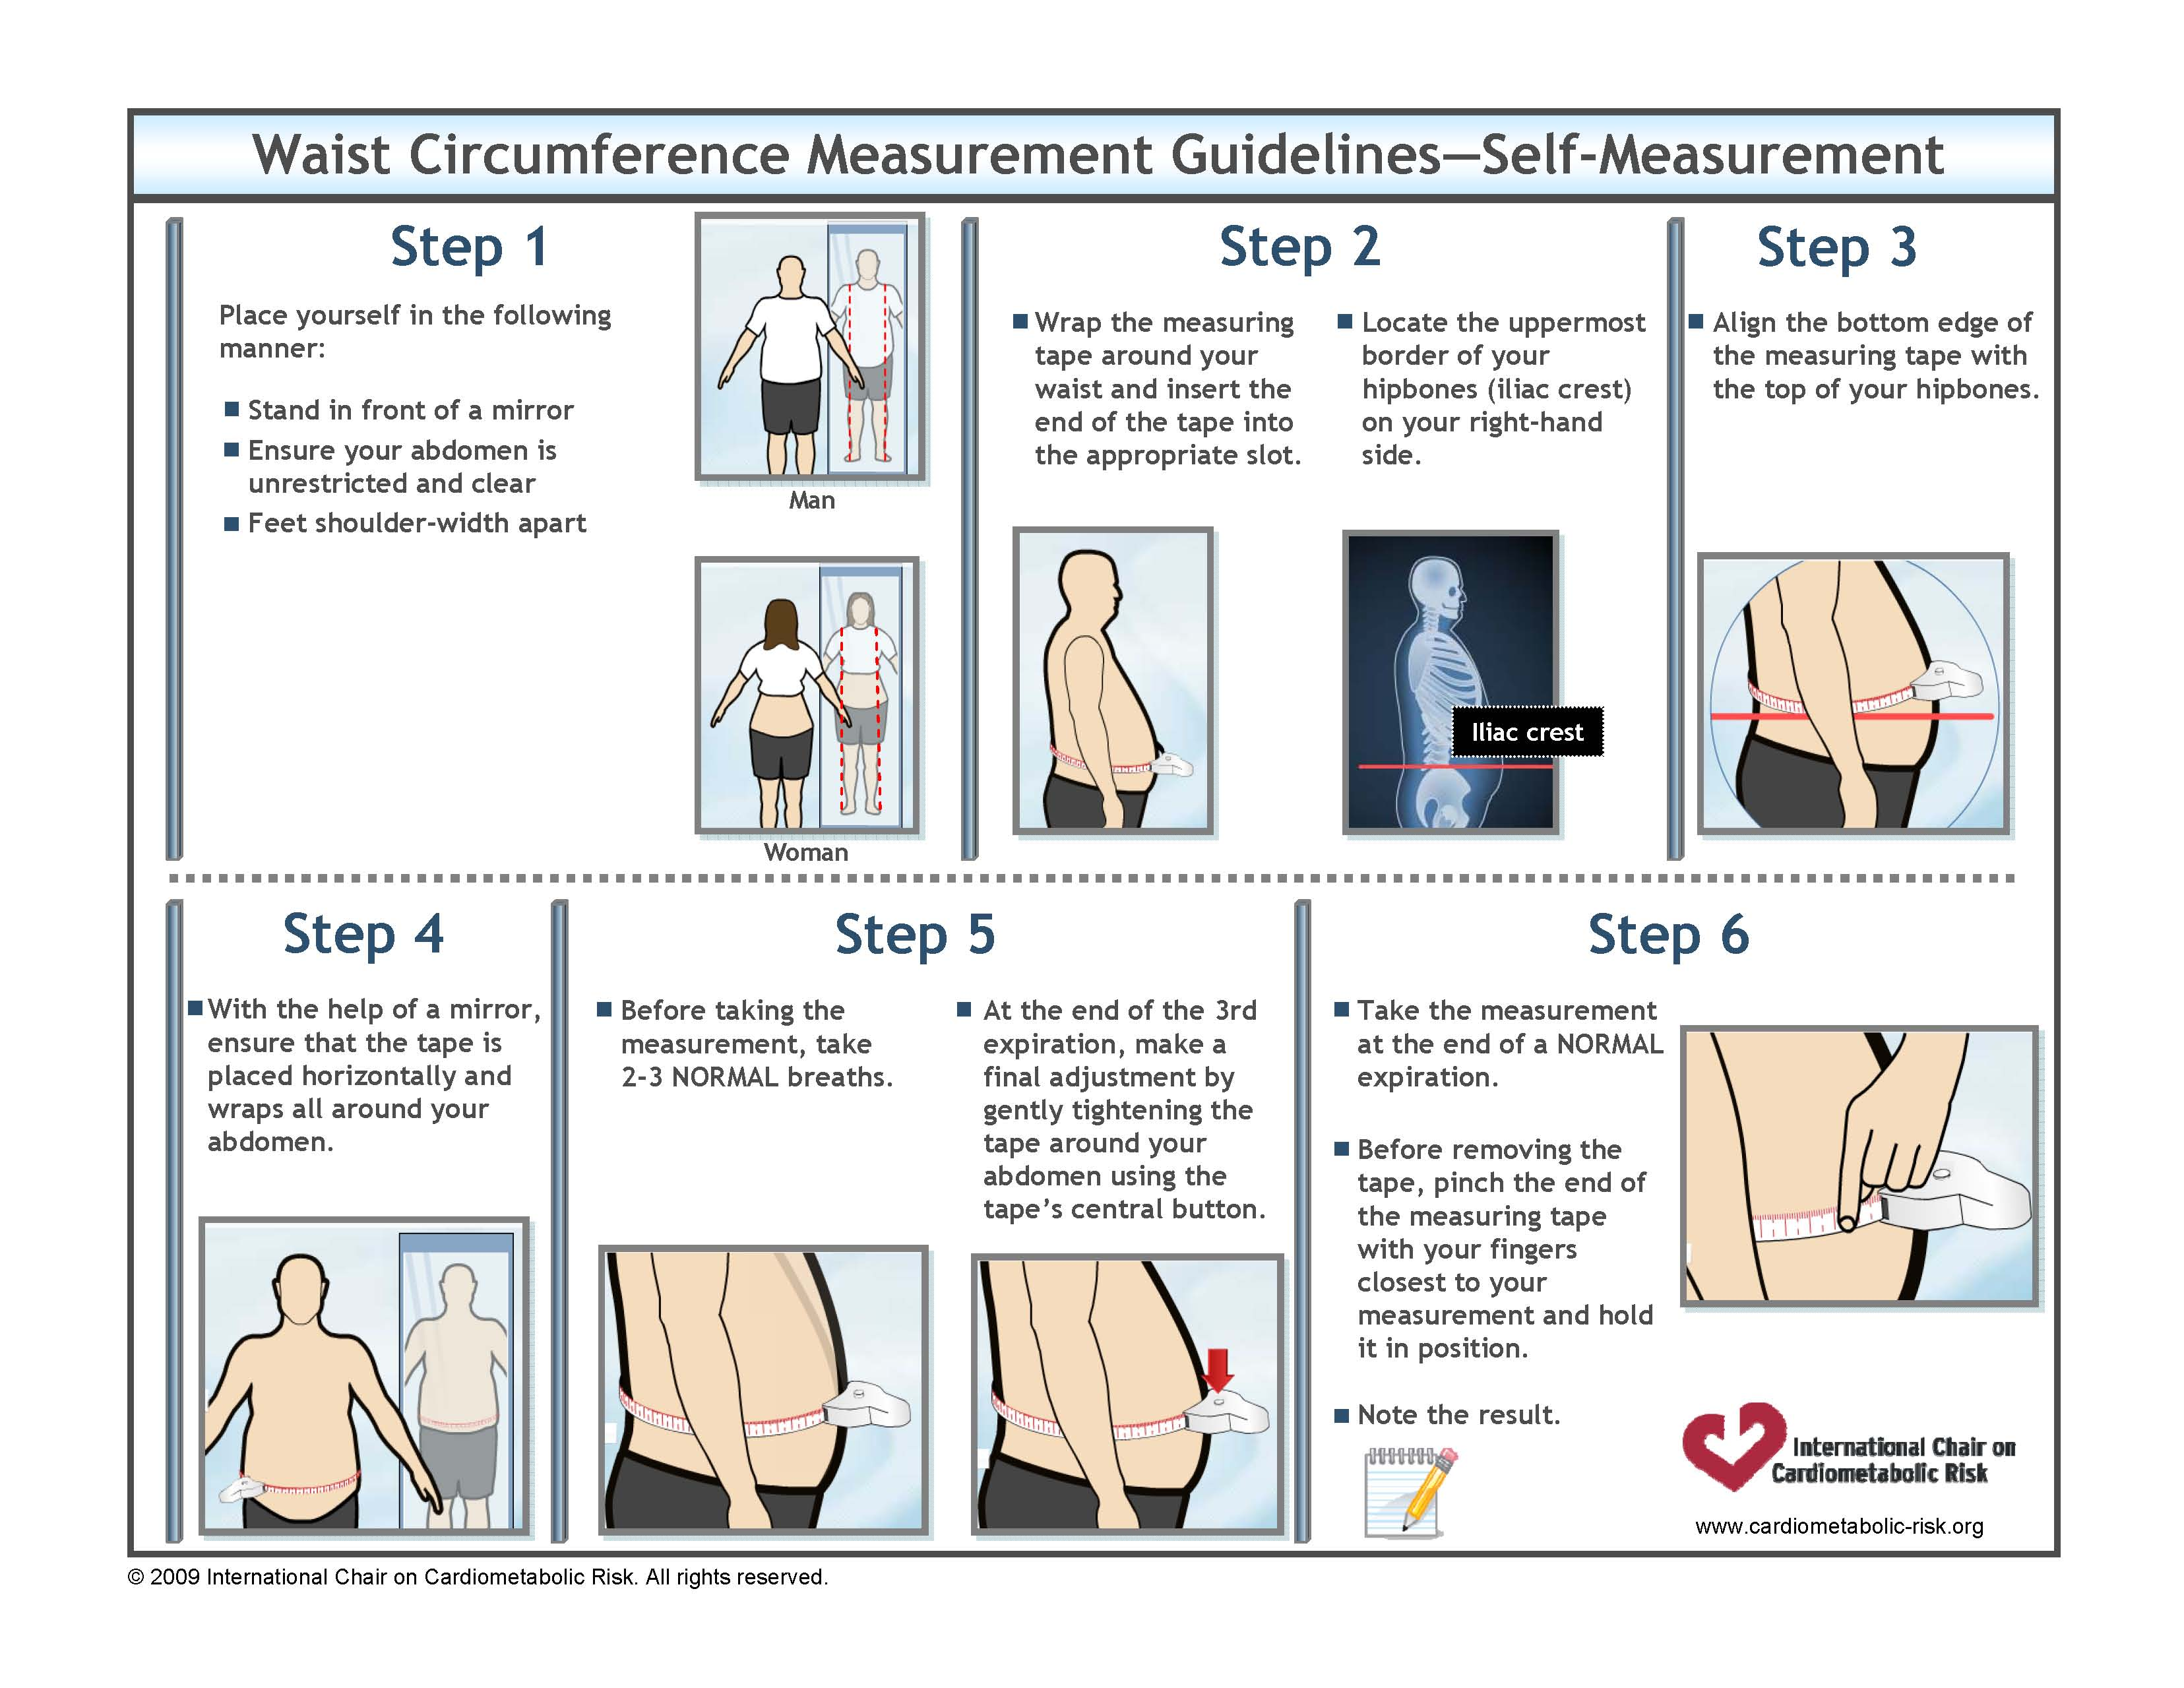 Self-measurement of the Waist